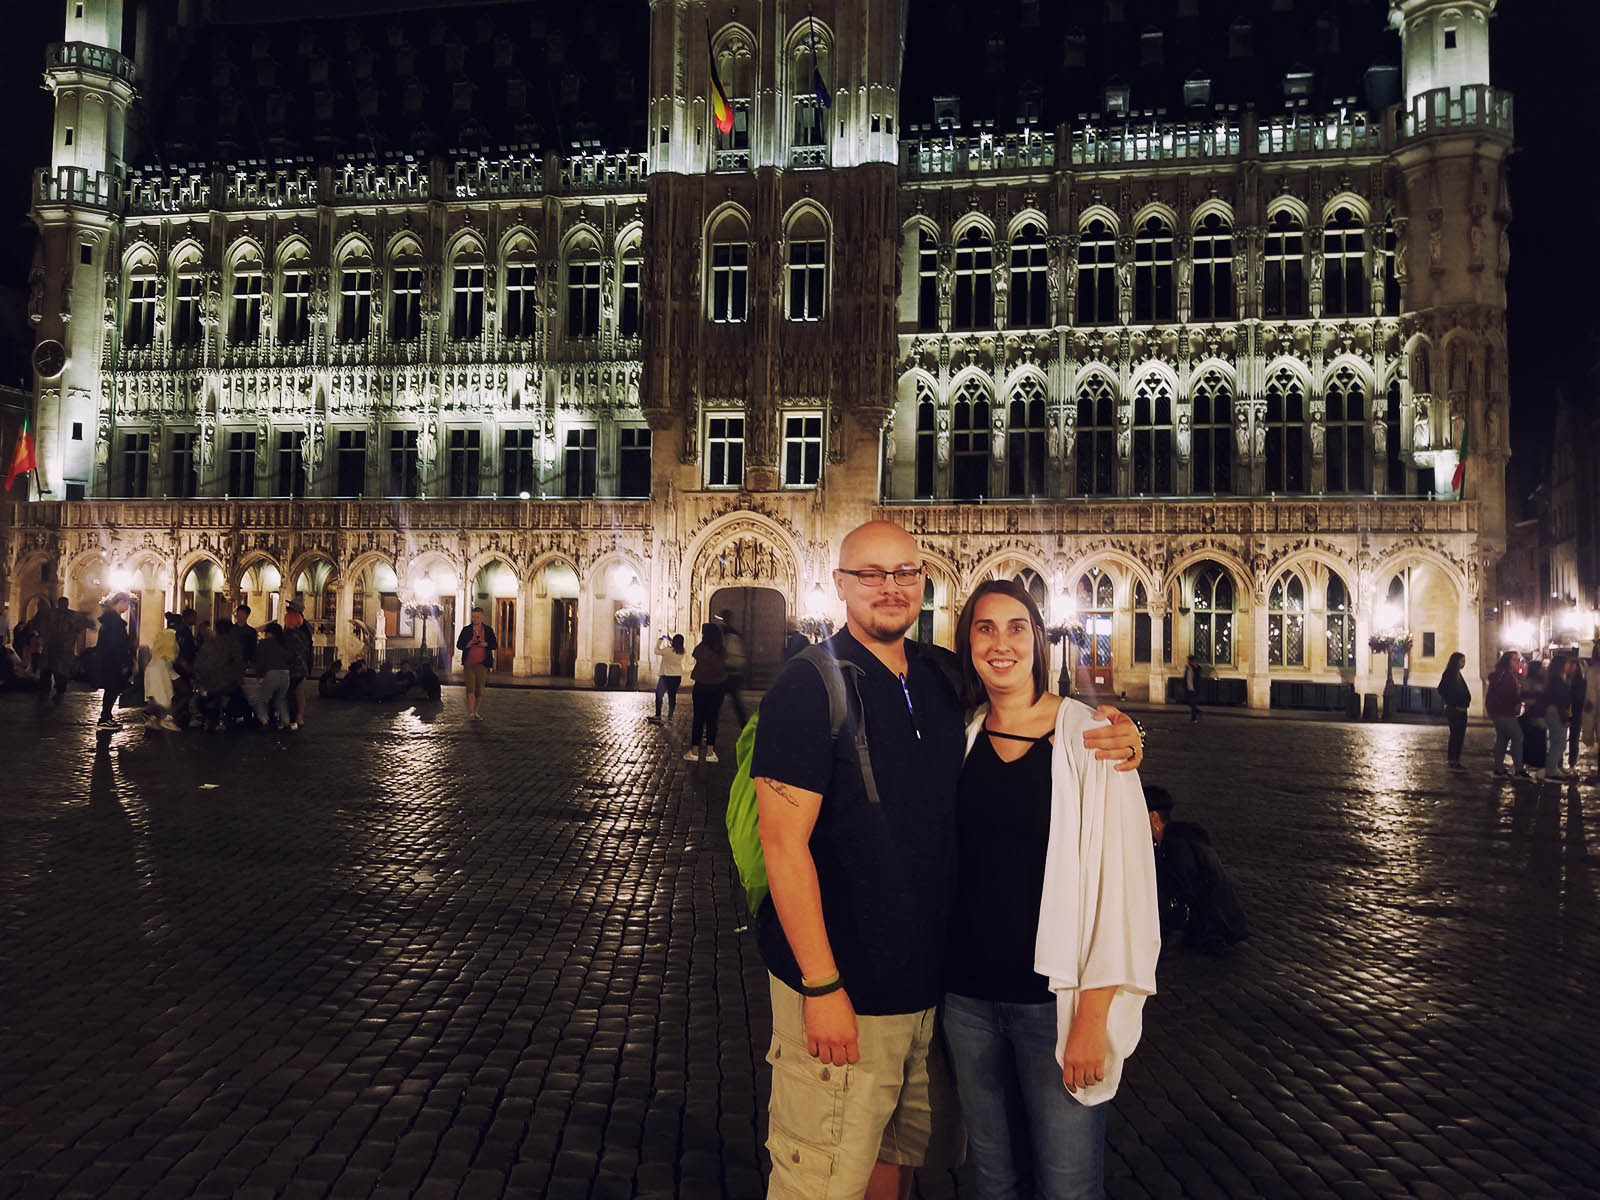 Scott Davis and his wife on the streets at night in Brussels